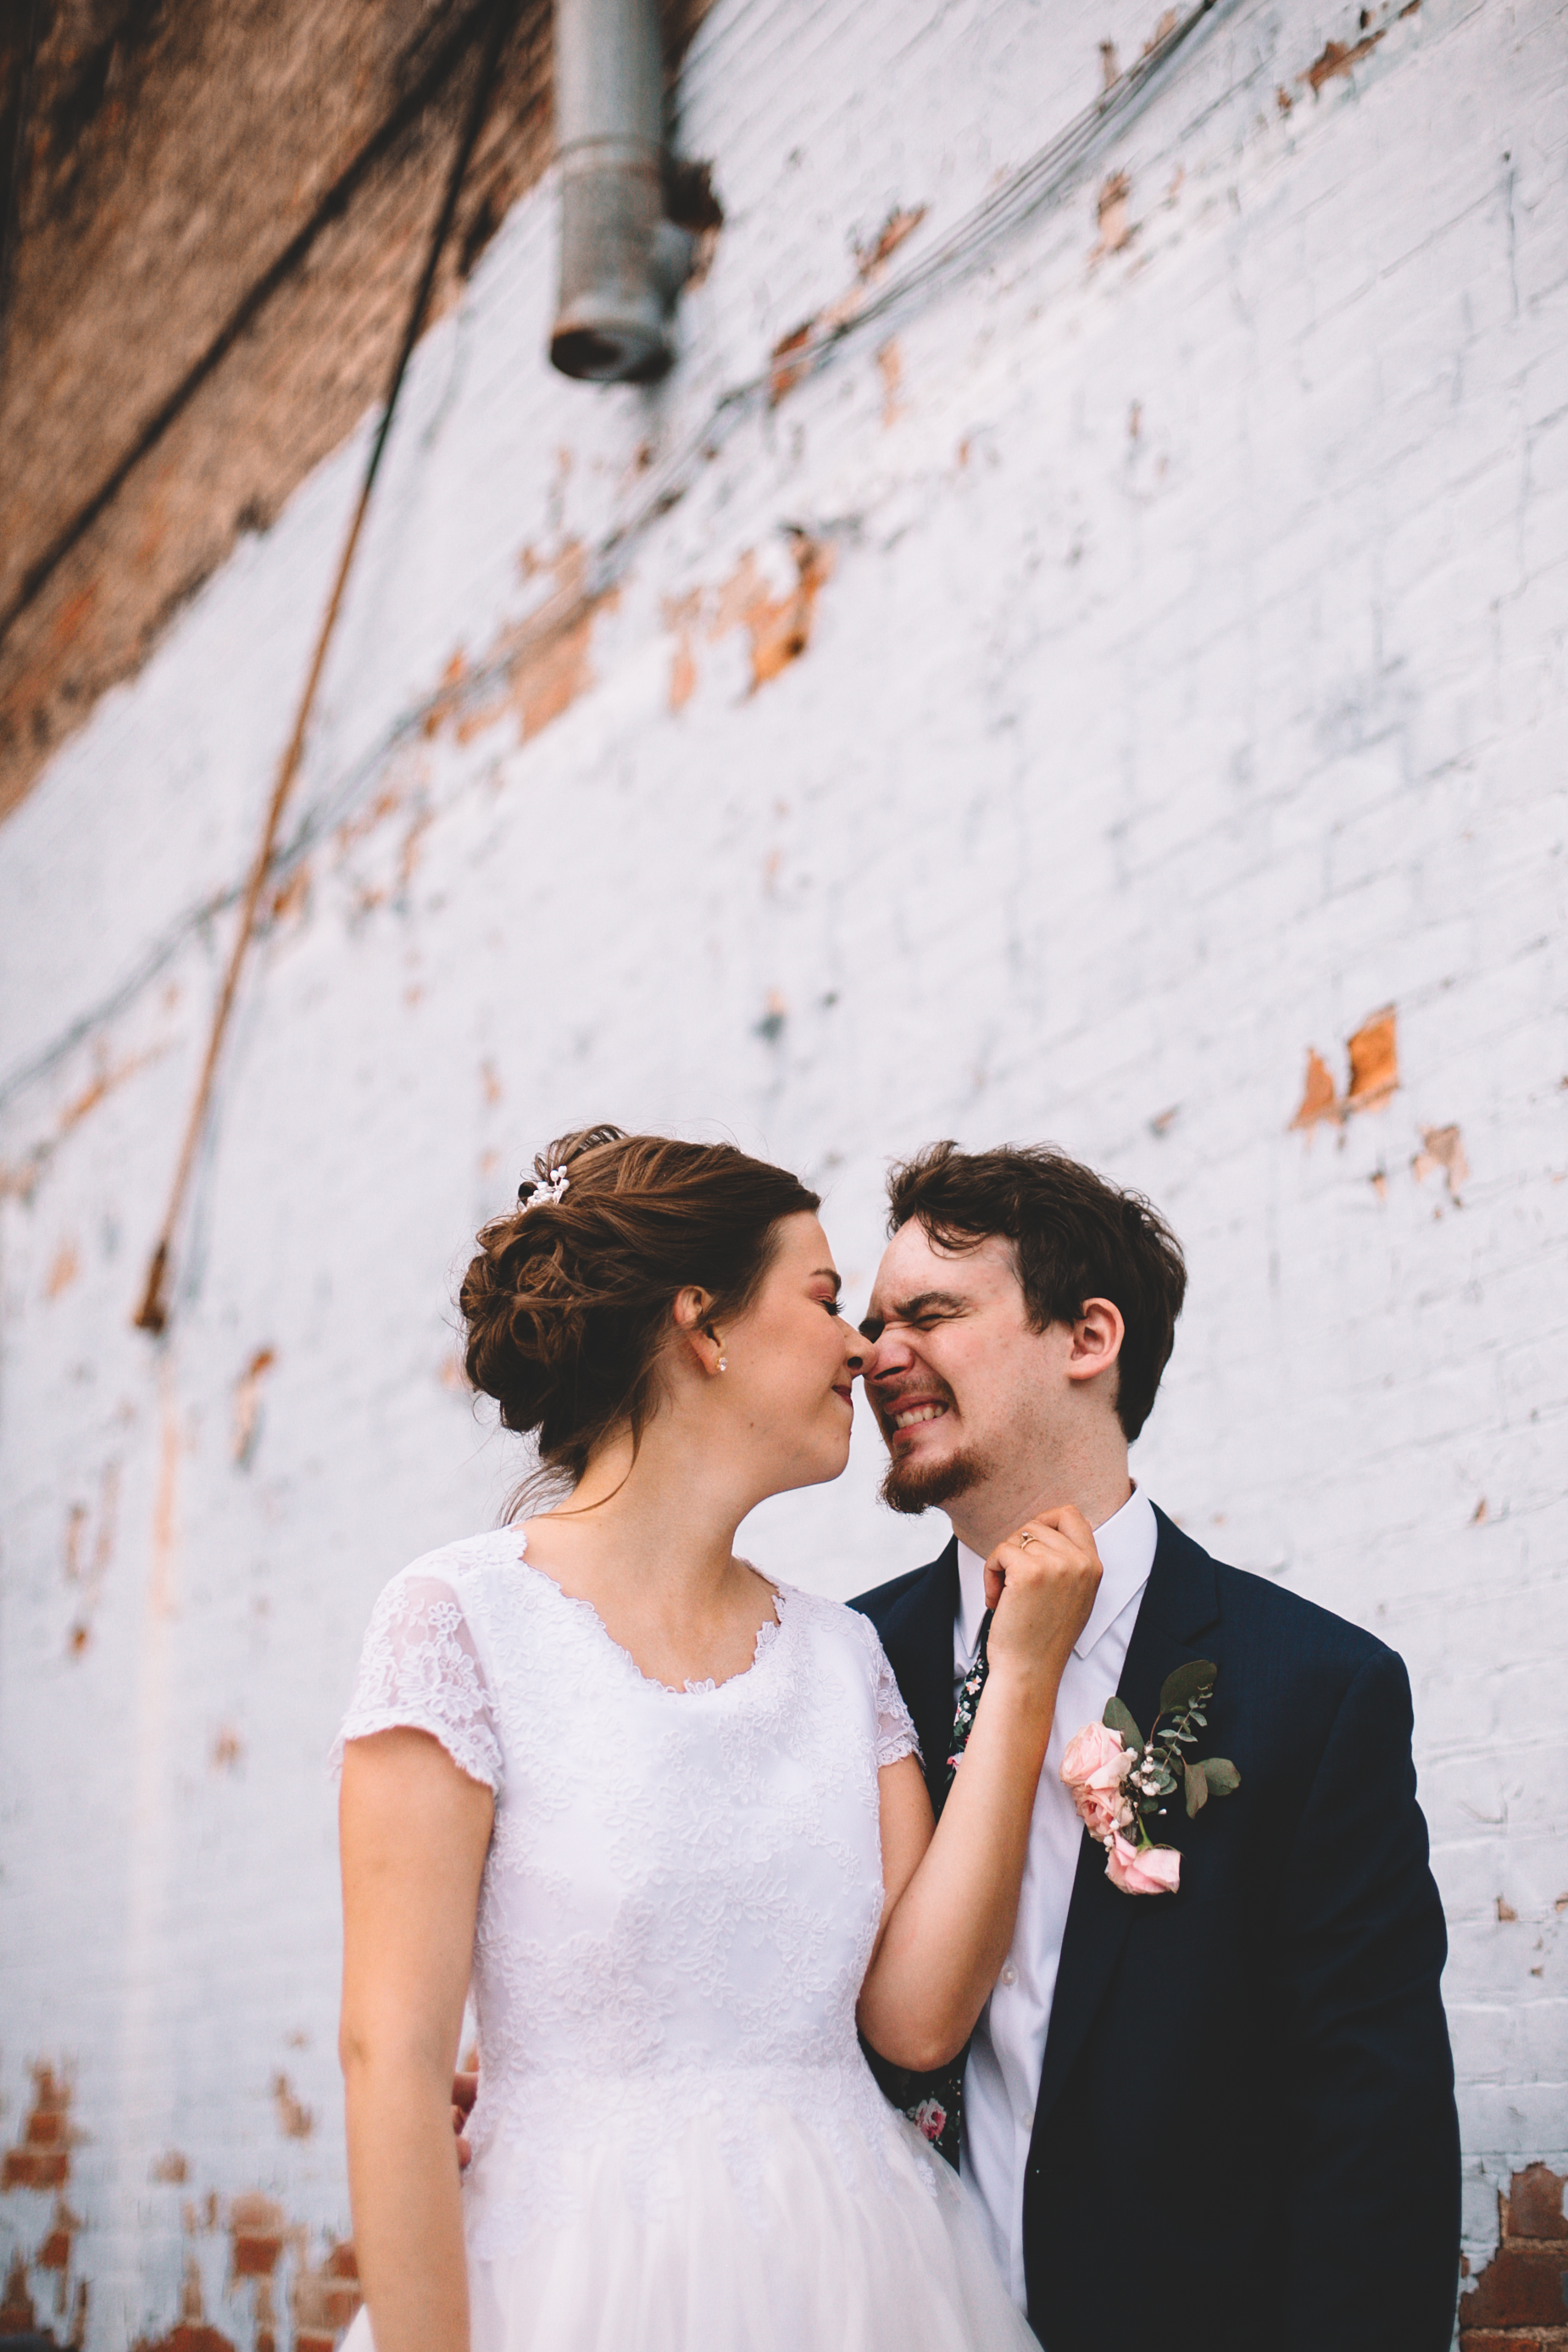 Urban Distressed Brick Wall Bridal Portraits Again We Say Rejoice Photography (10 of 18).jpg